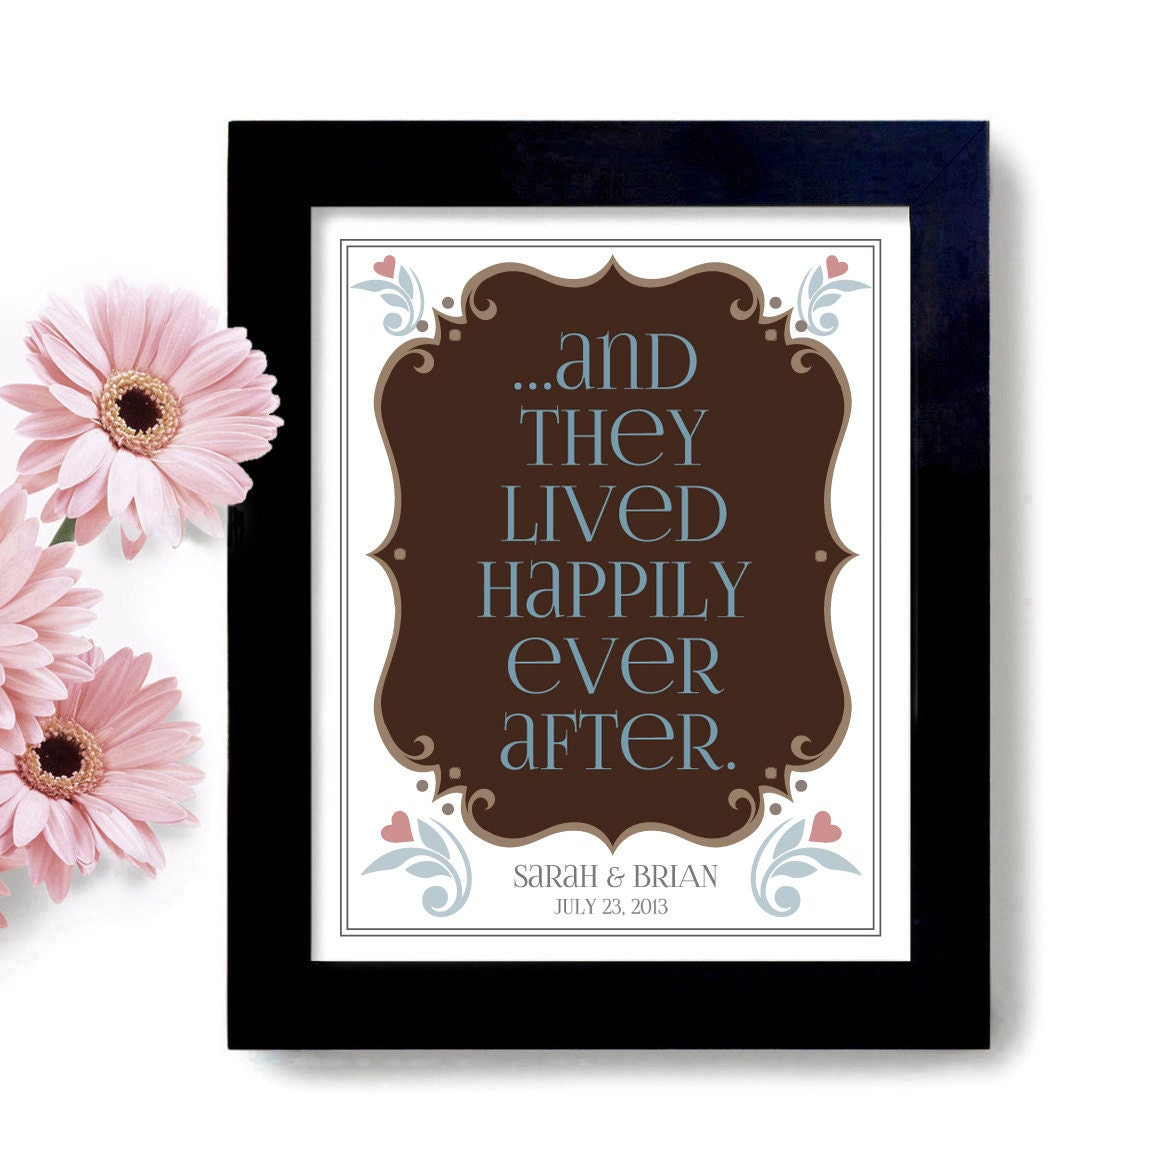 Happily Ever After Wedding Gift Unique Personalized By DexMex